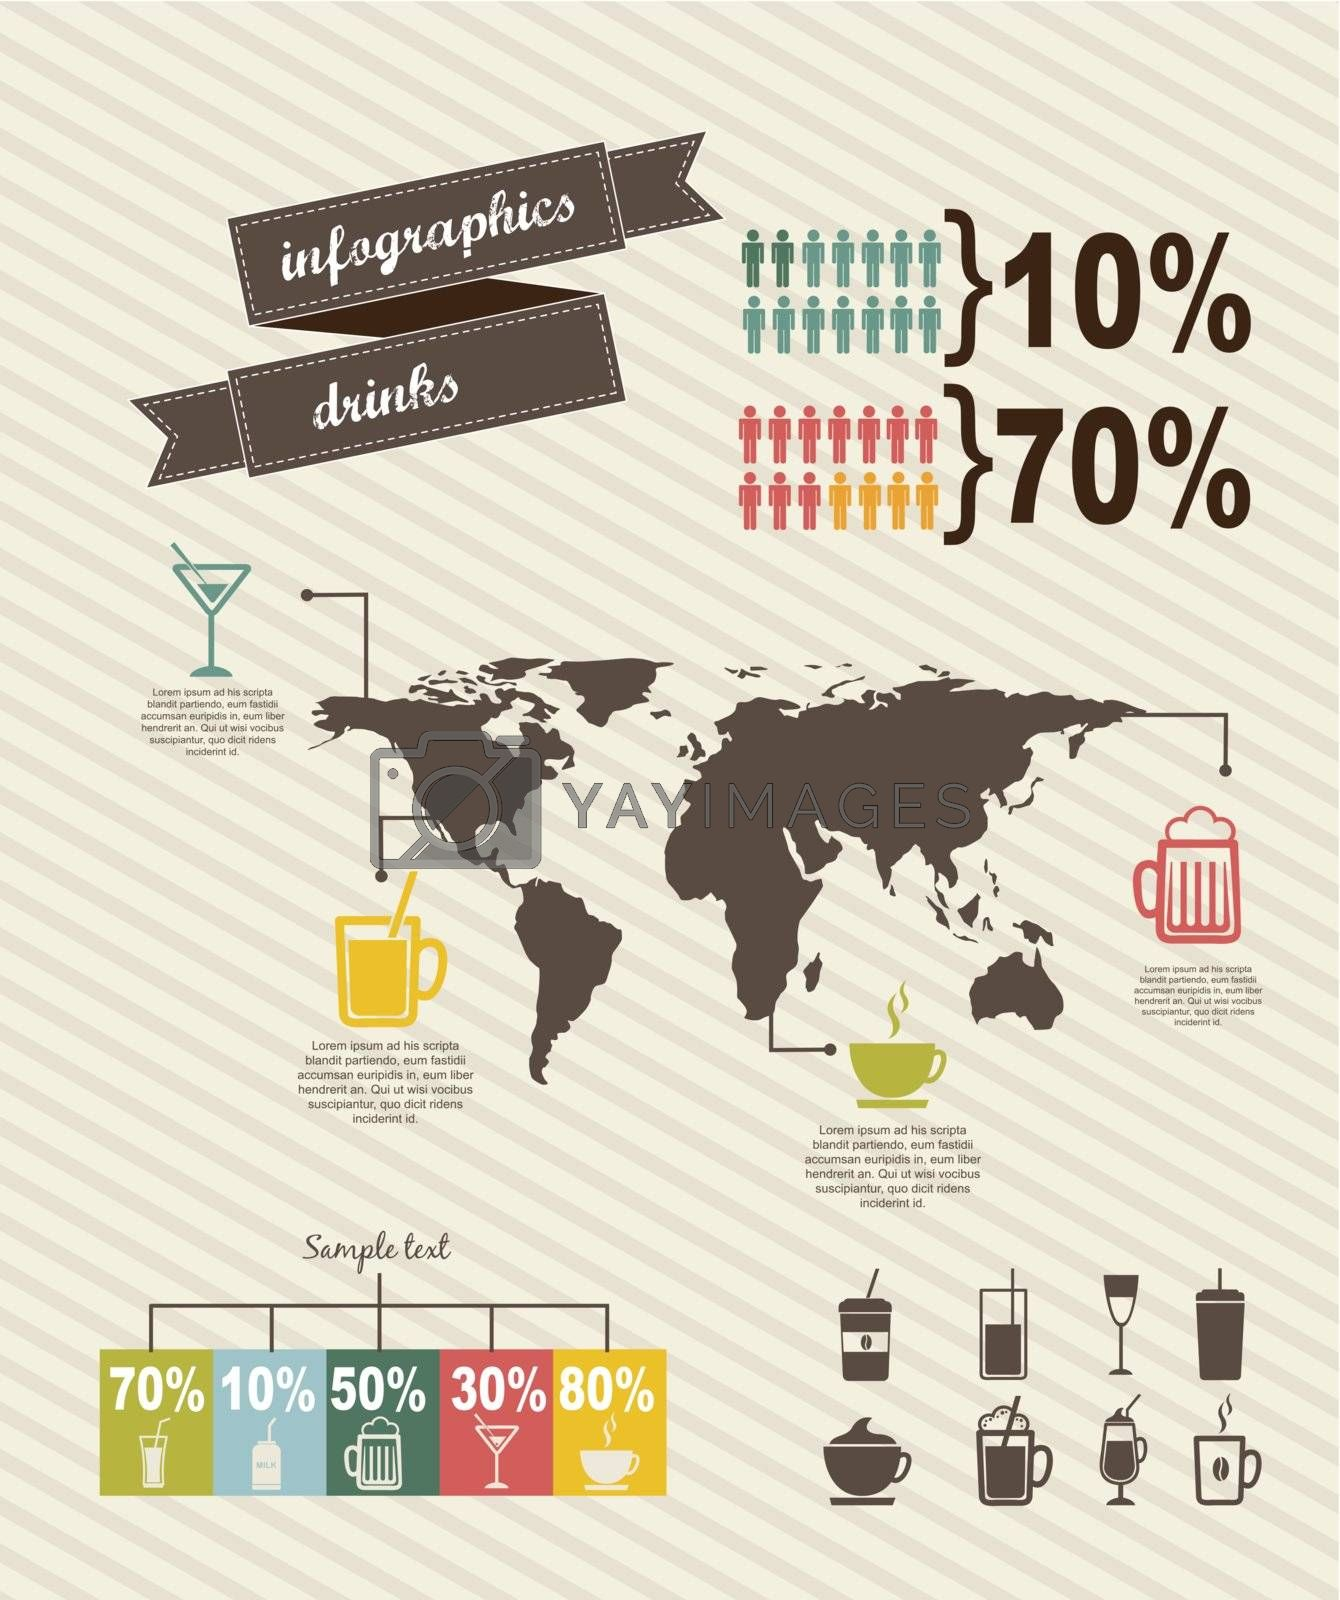 infographics of drinks, vintage style. vector illustration